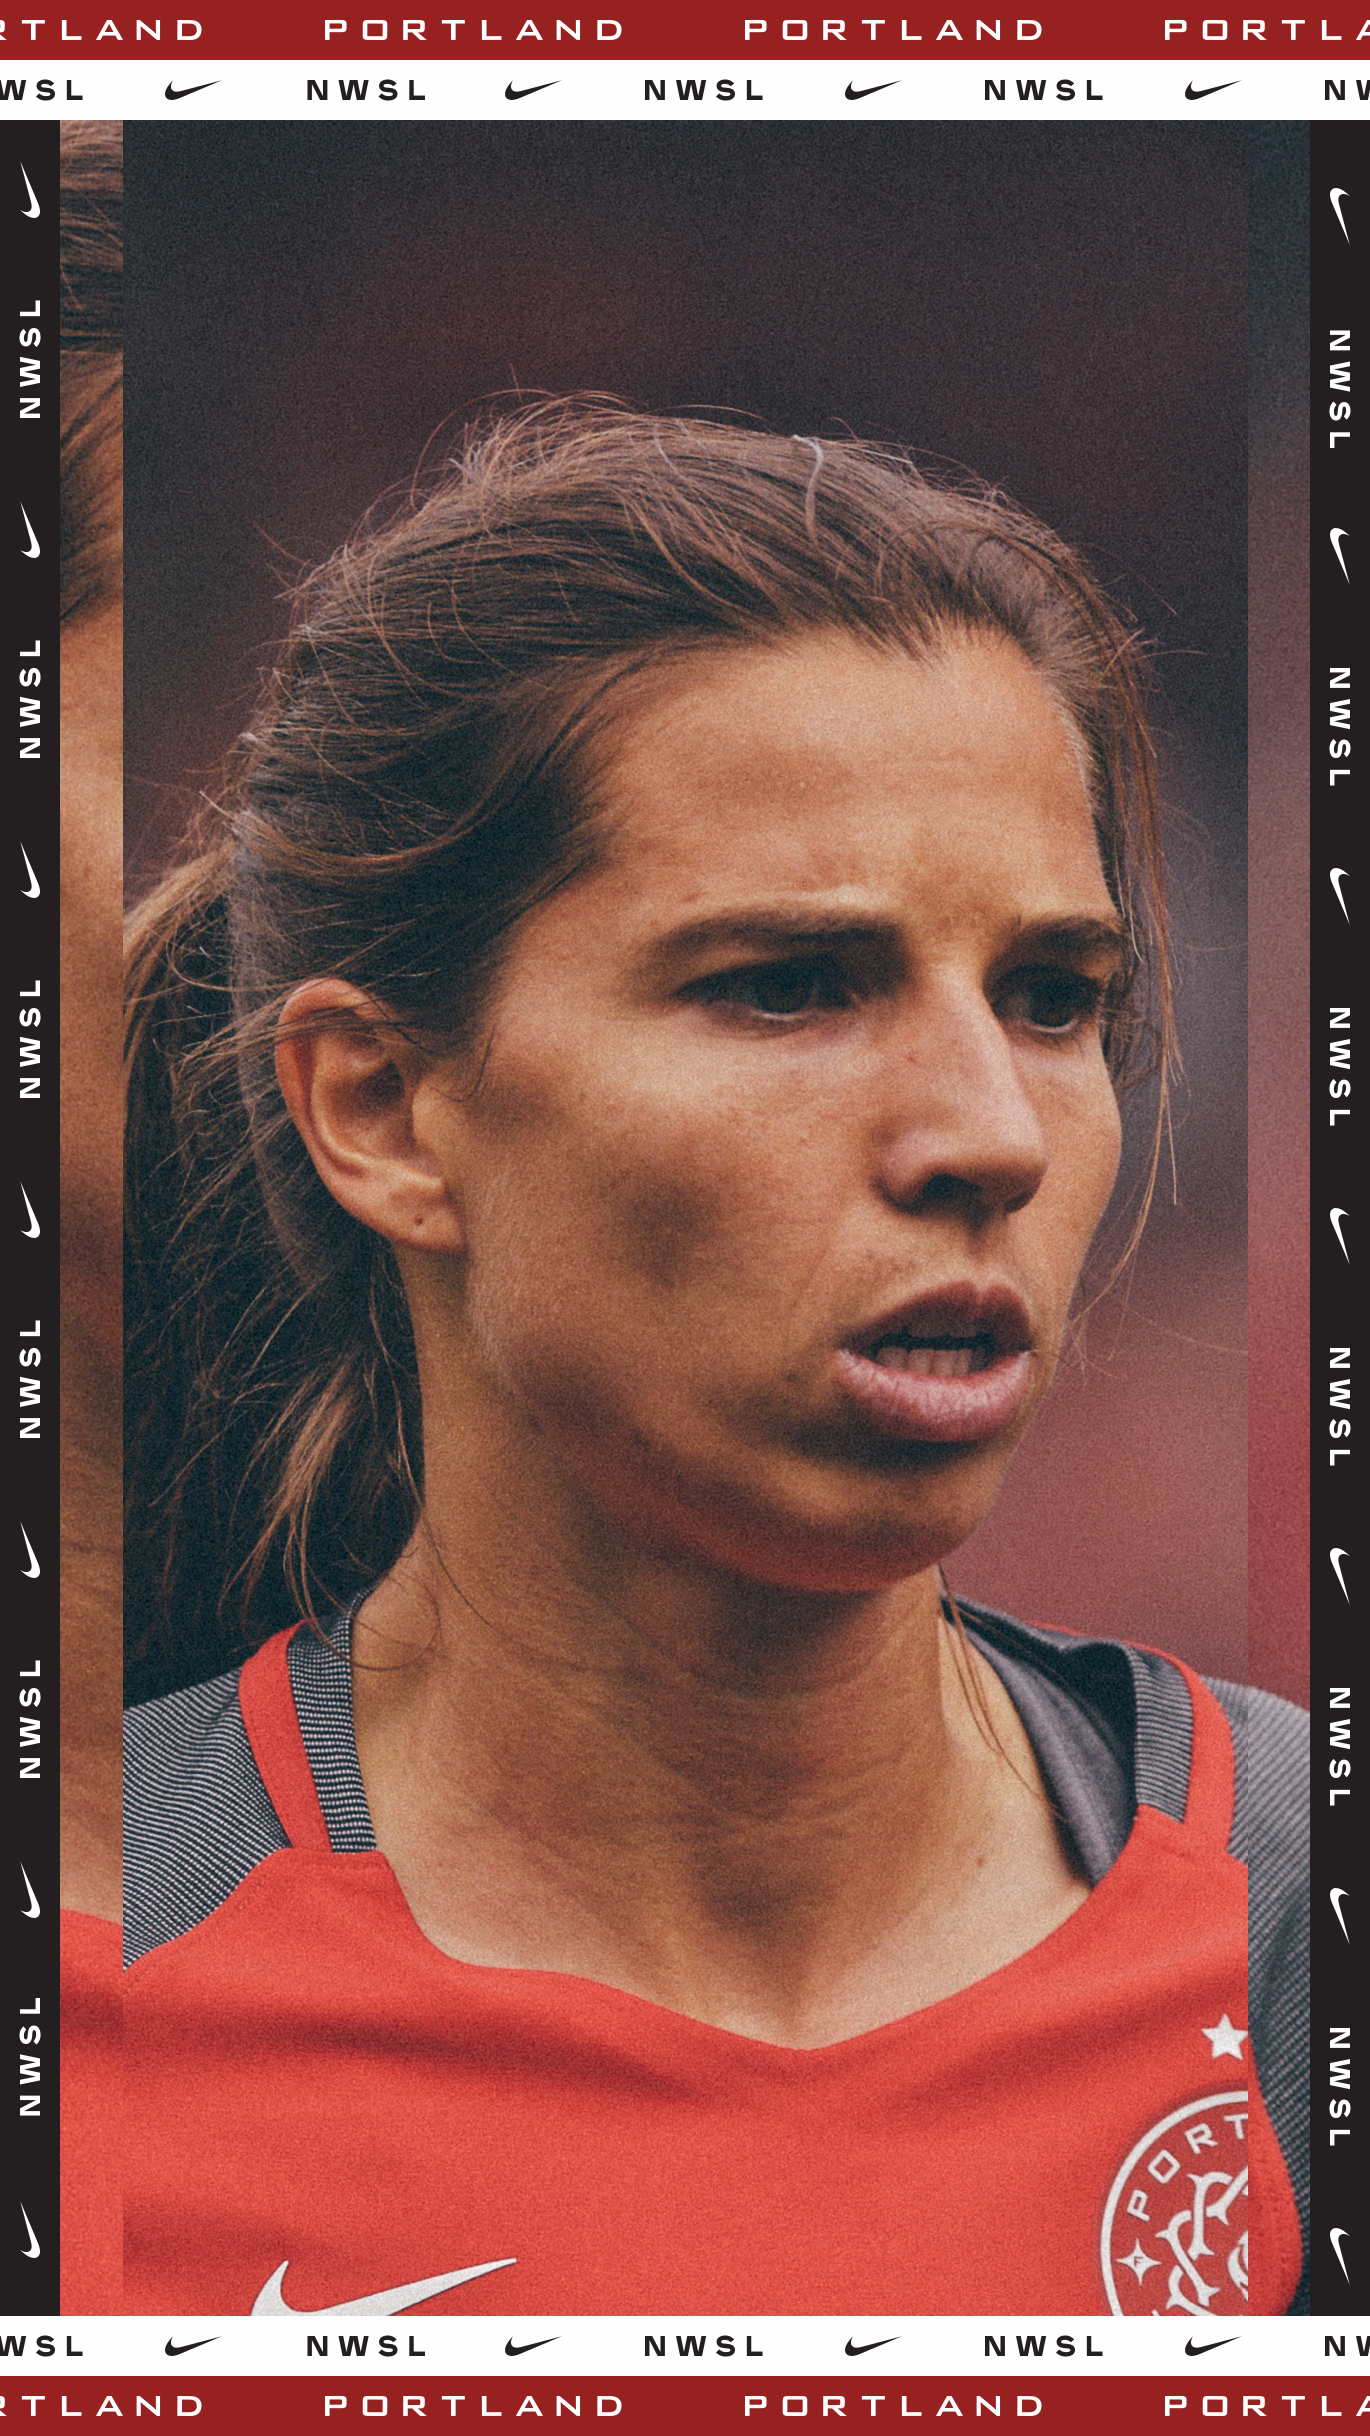 NIKE-NWSL-IG-STORY-04.png